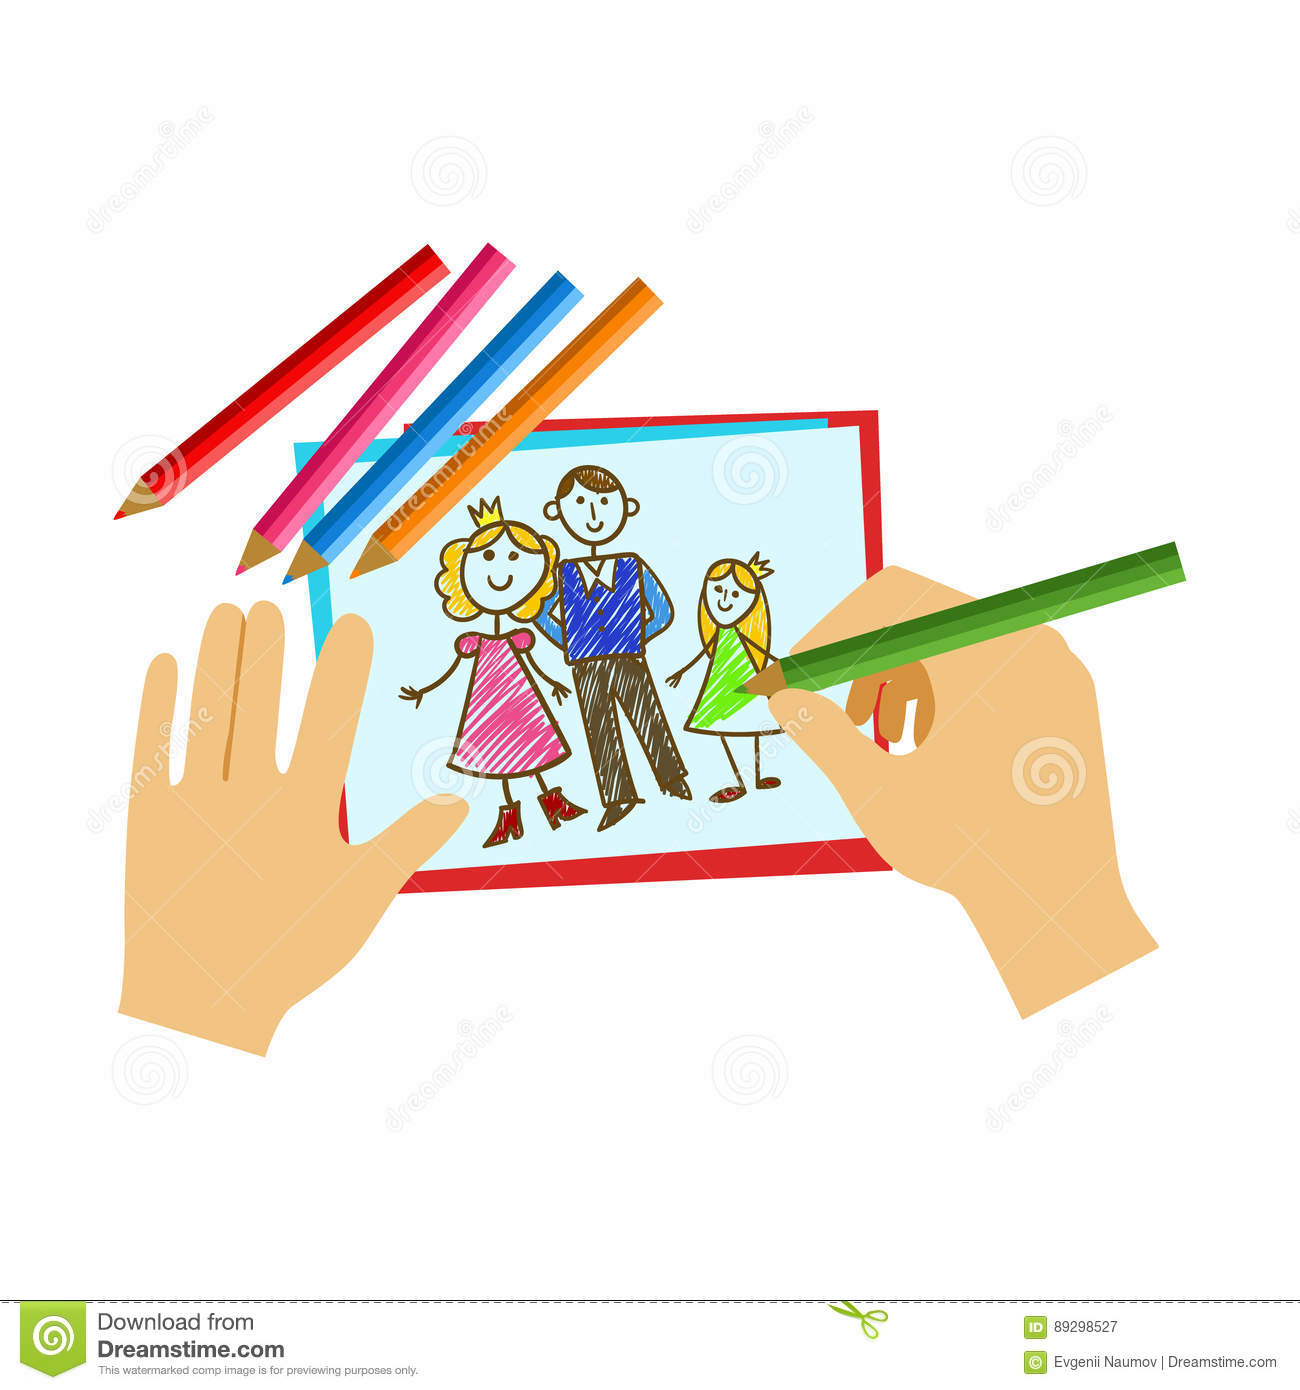 Two Hands Coloring With Pencil A Book Page Elementary School Art Class Vector Illustration